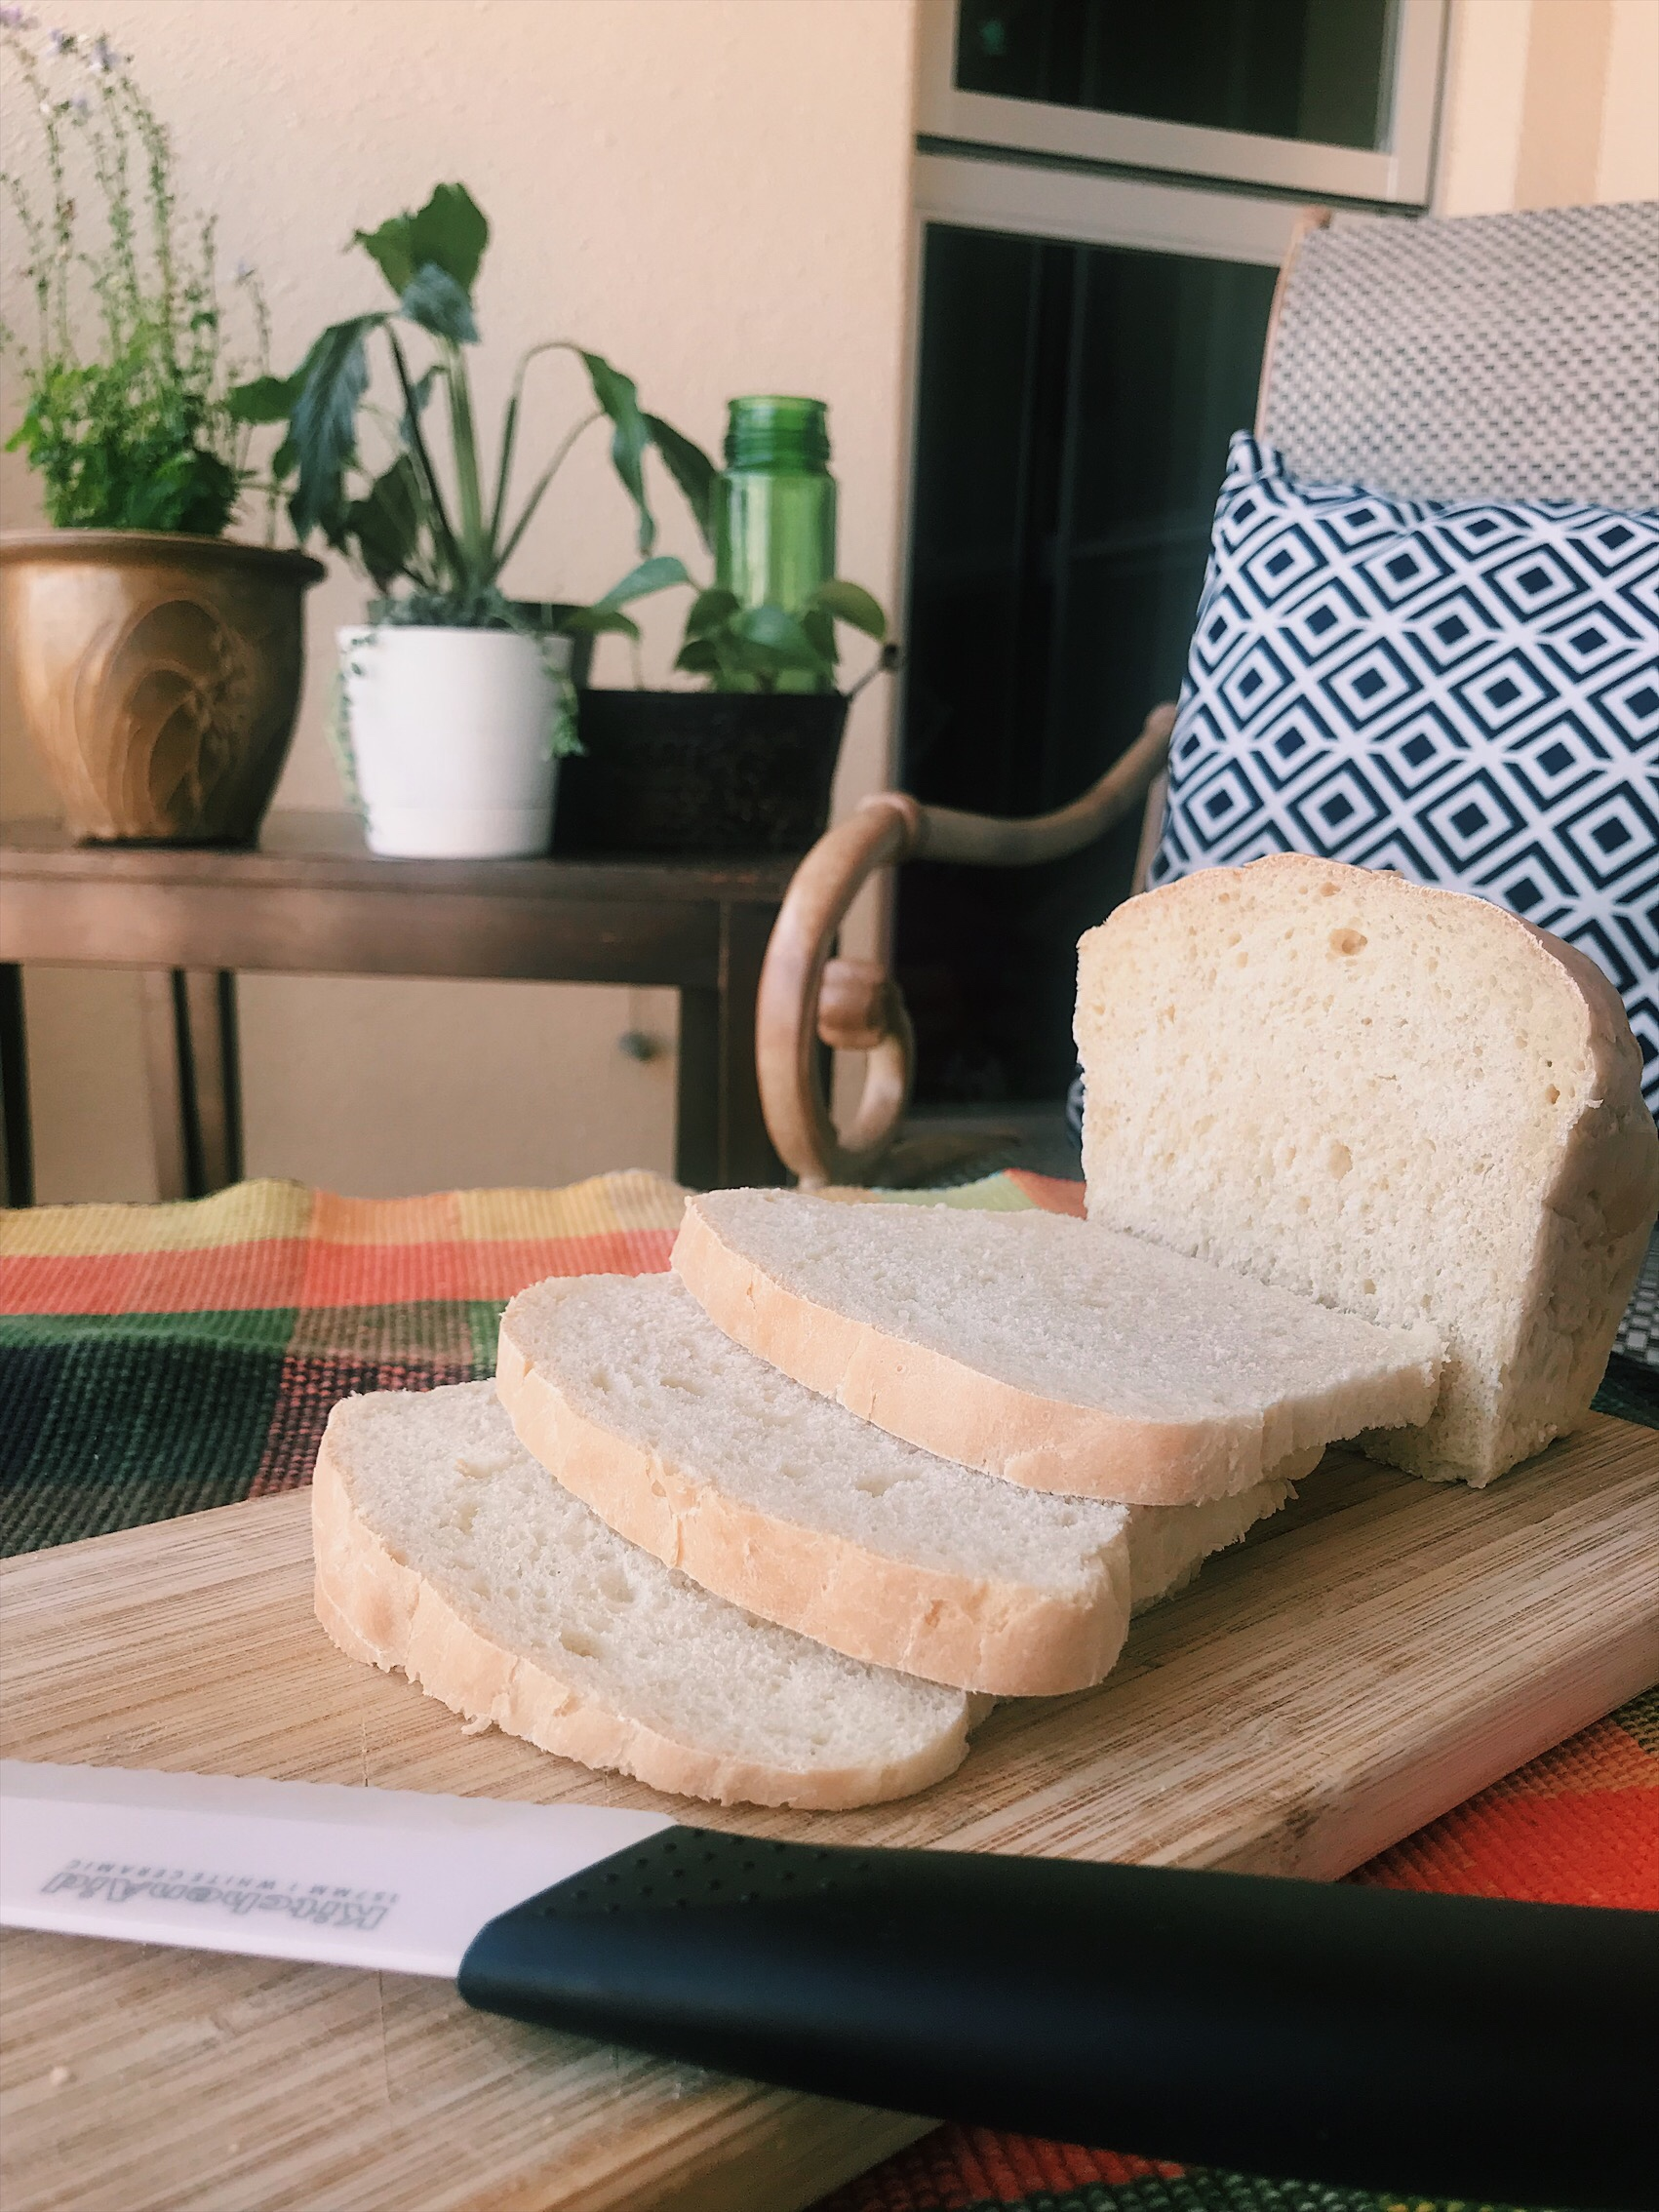 Mom's Easy Homemade Bread - Little Sustainable Steps